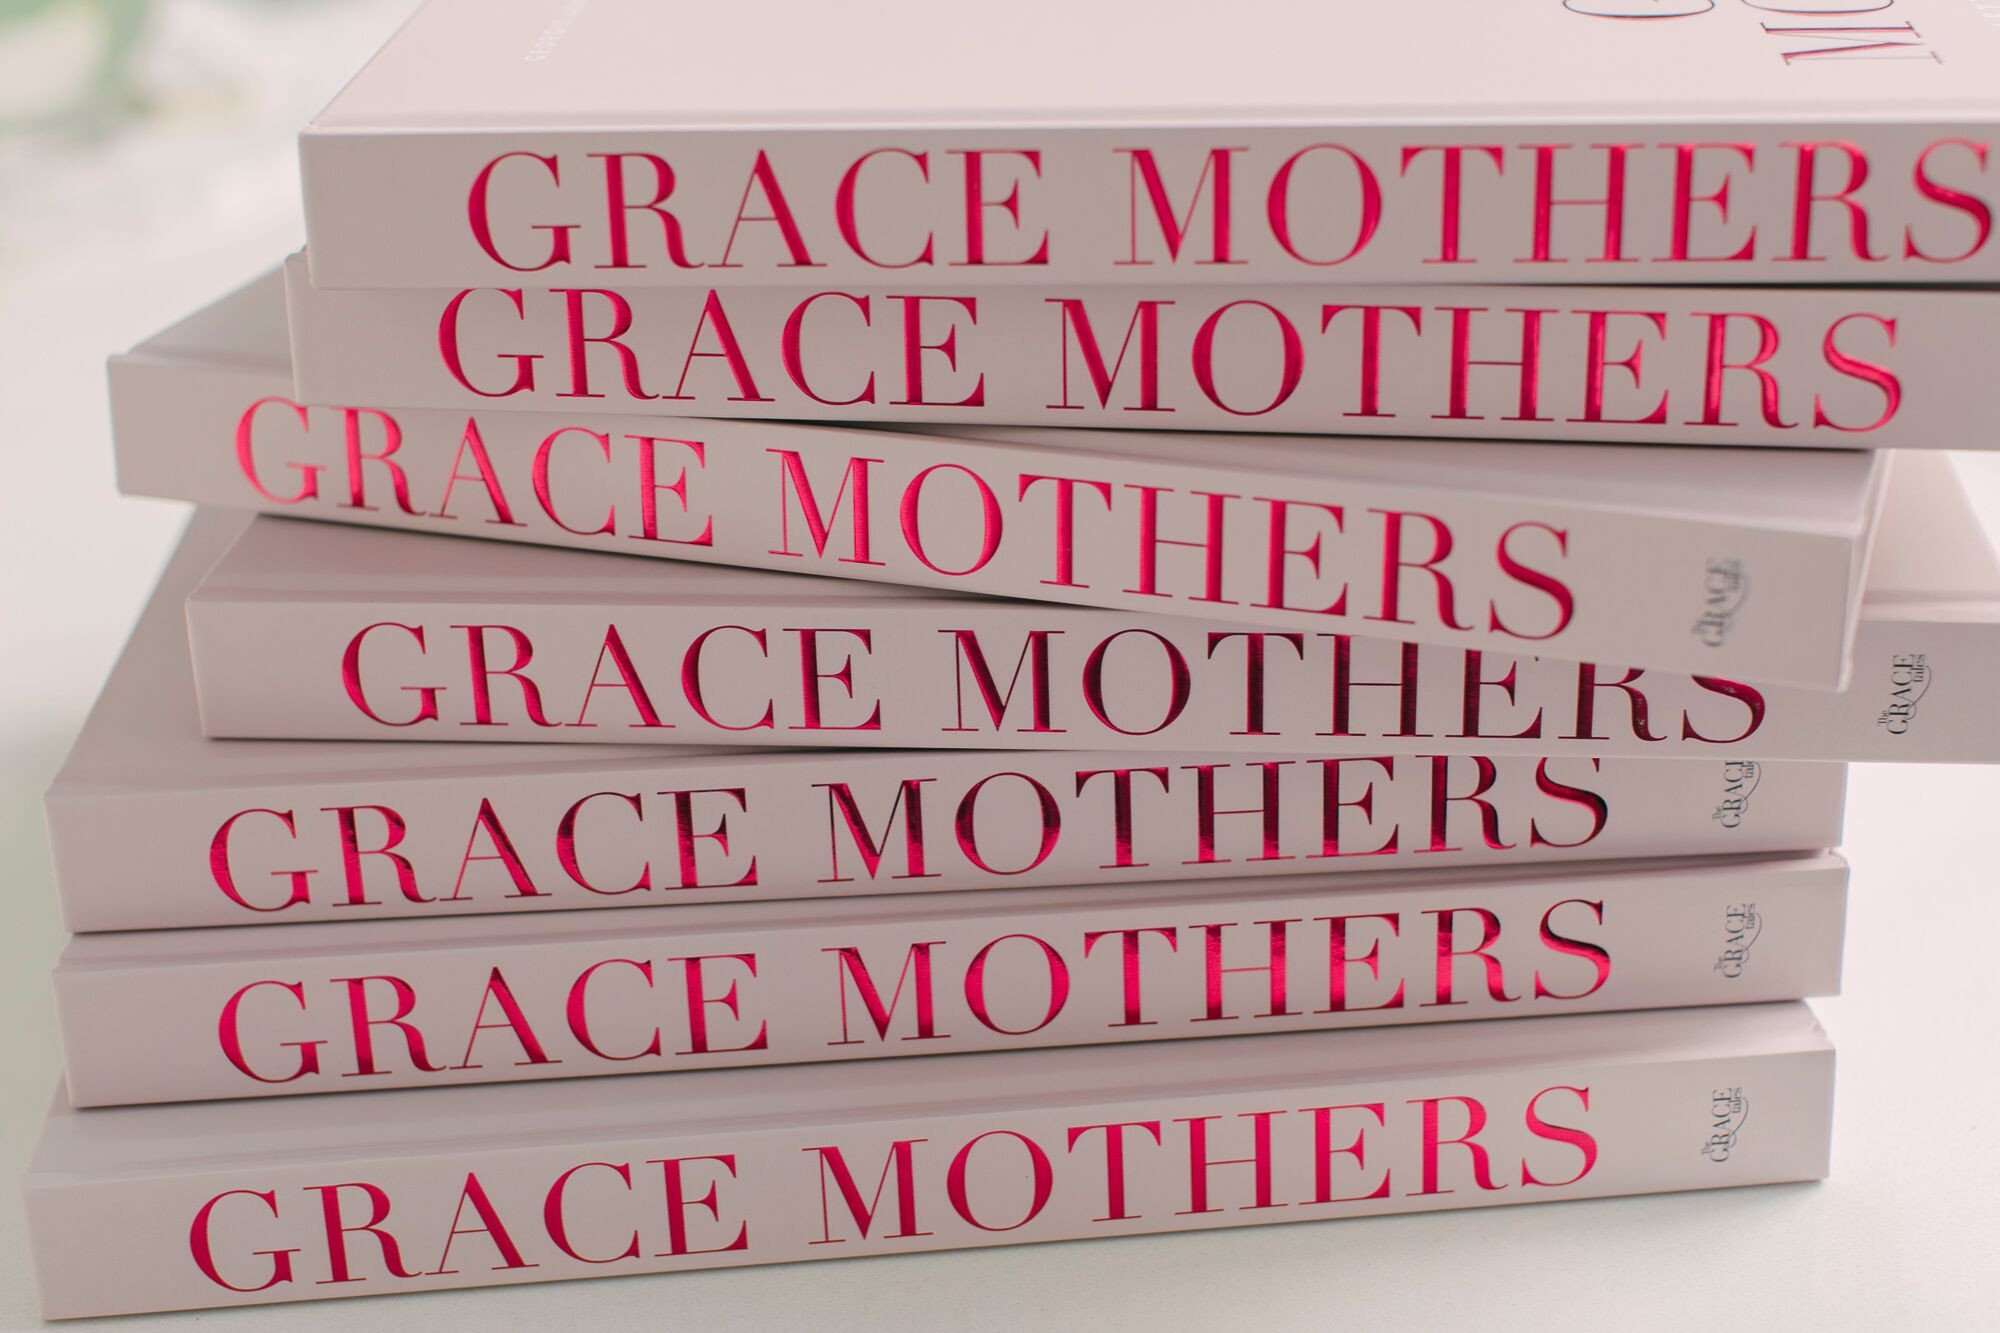 Take A Look Inside Our New Book 'Grace Mothers Letters To Our Children'